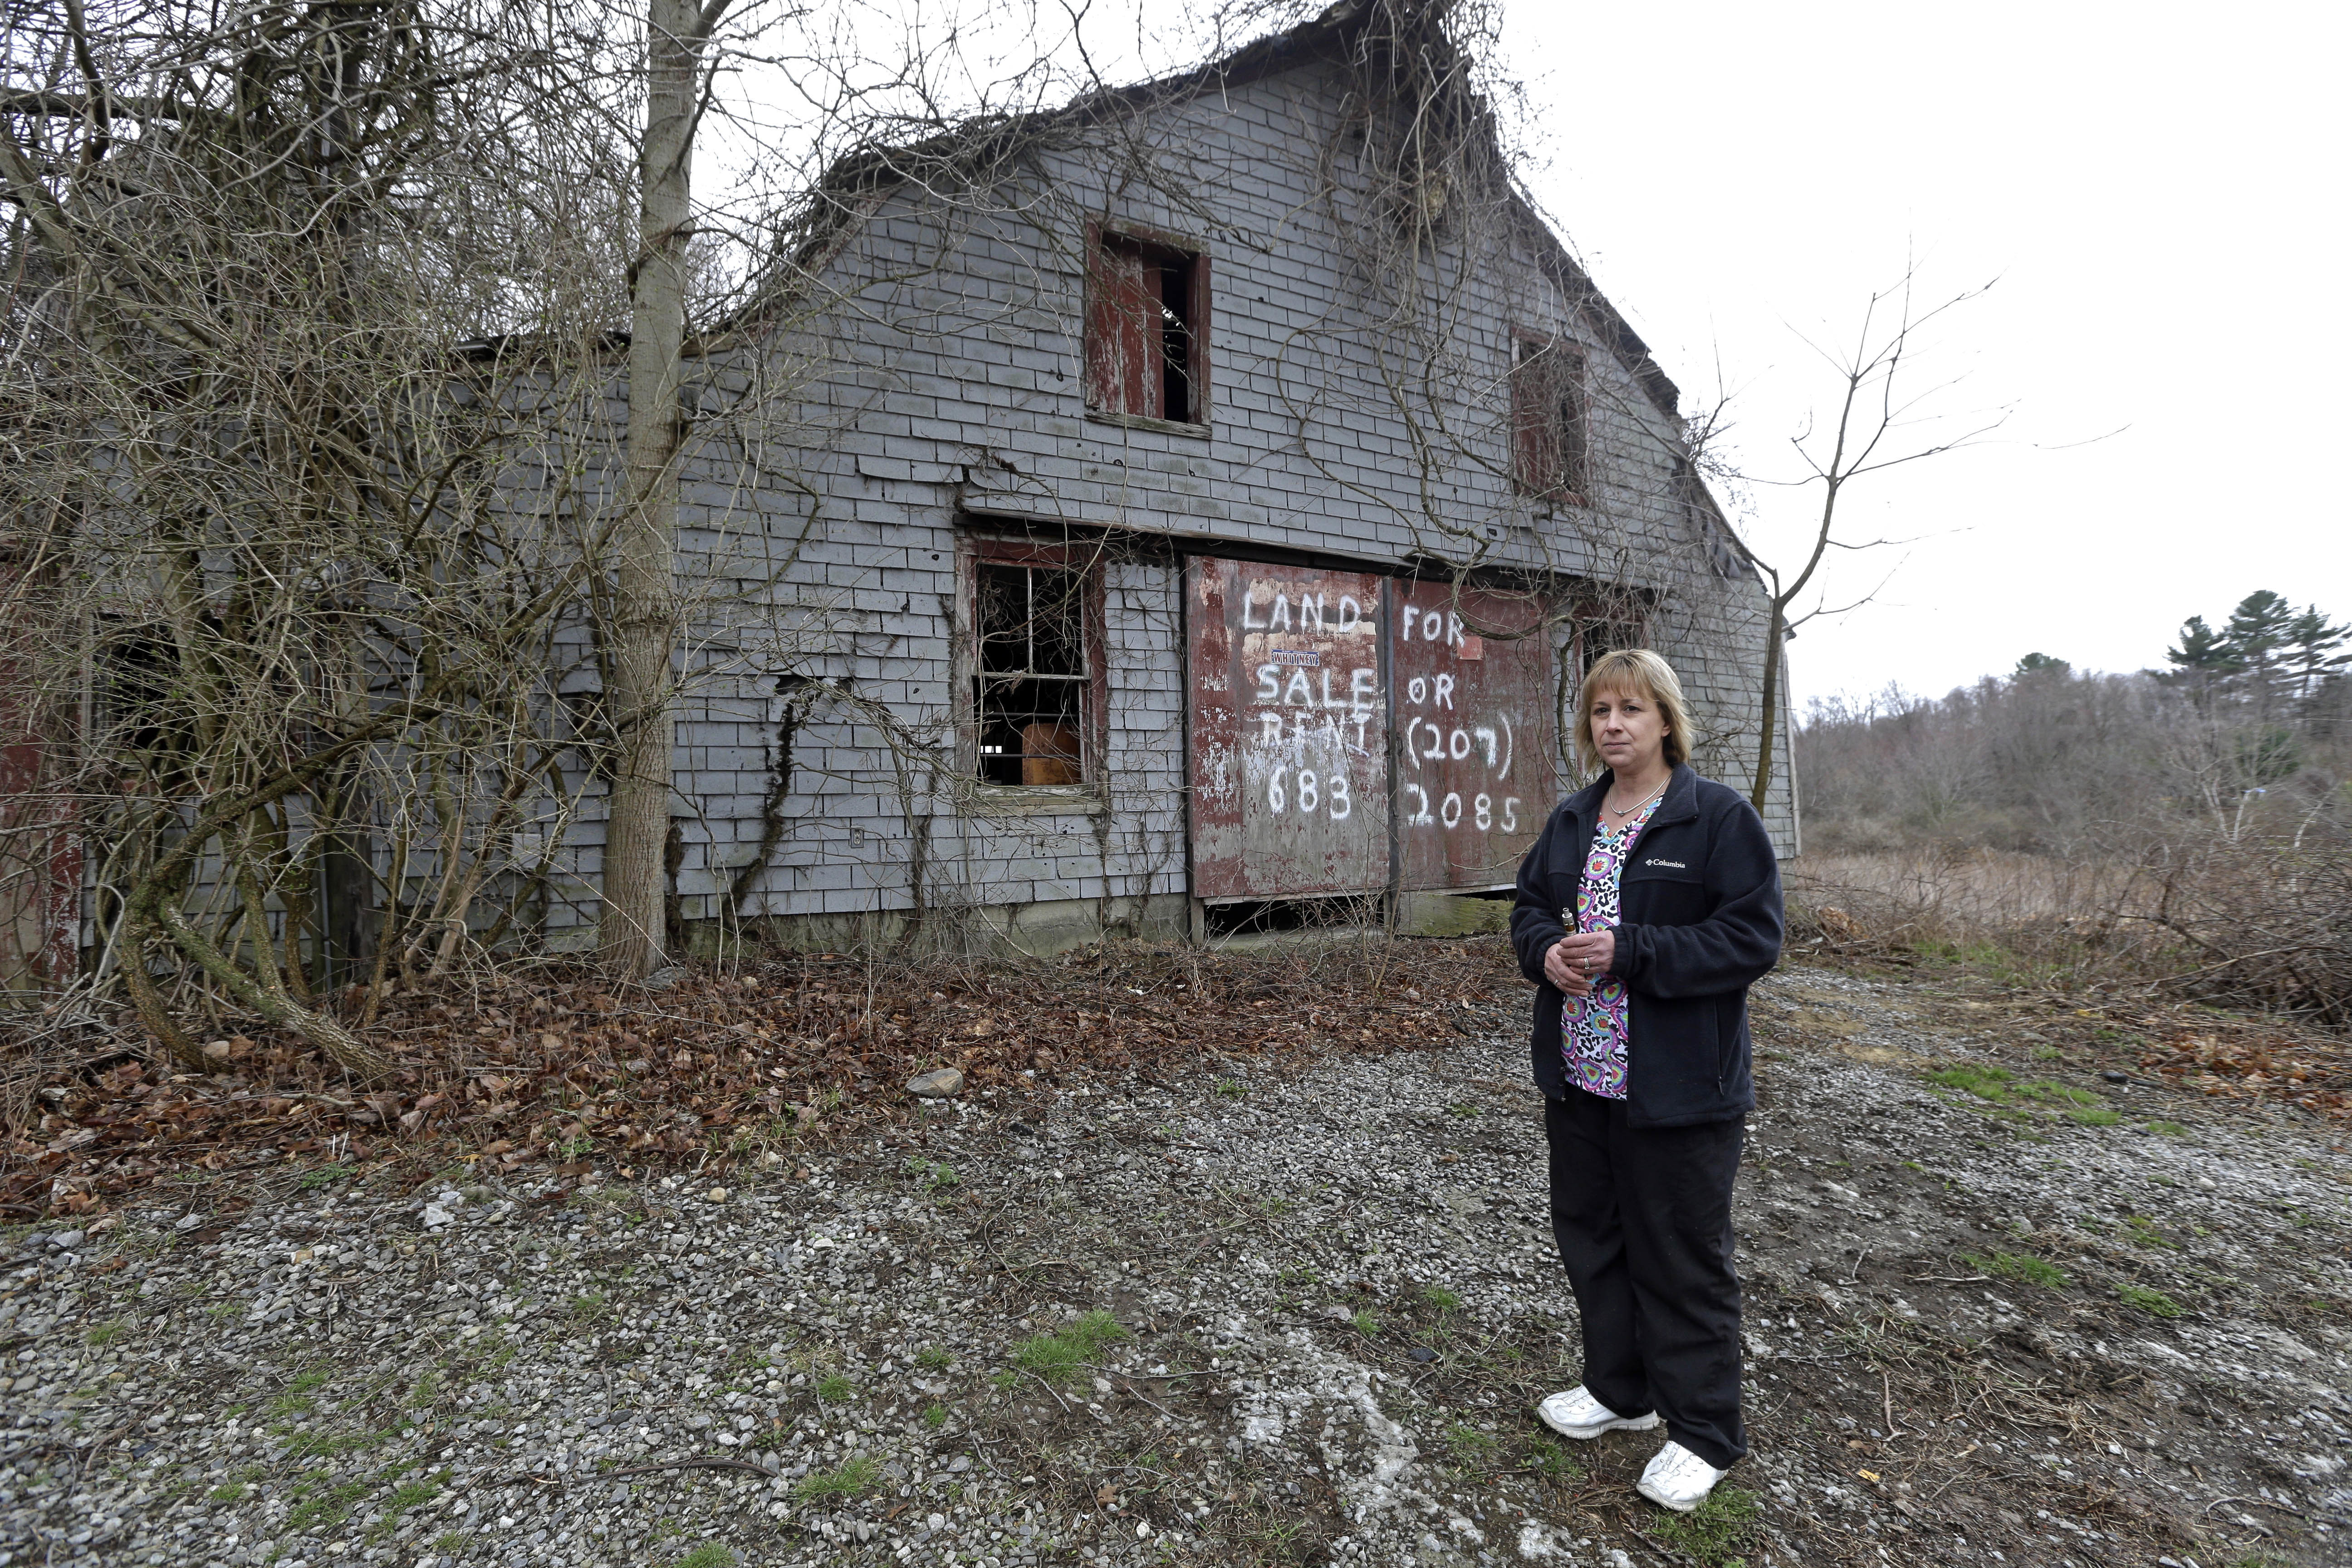 Desiree Moninski stands on the site of a proposed Muslim cemetery in Dudley, Mass on April 12, 2016. Federal prosecutors have opened an investigation into whether civil rights laws were violated by the town of Dudley that has rejected plans for the Muslim cemetery.